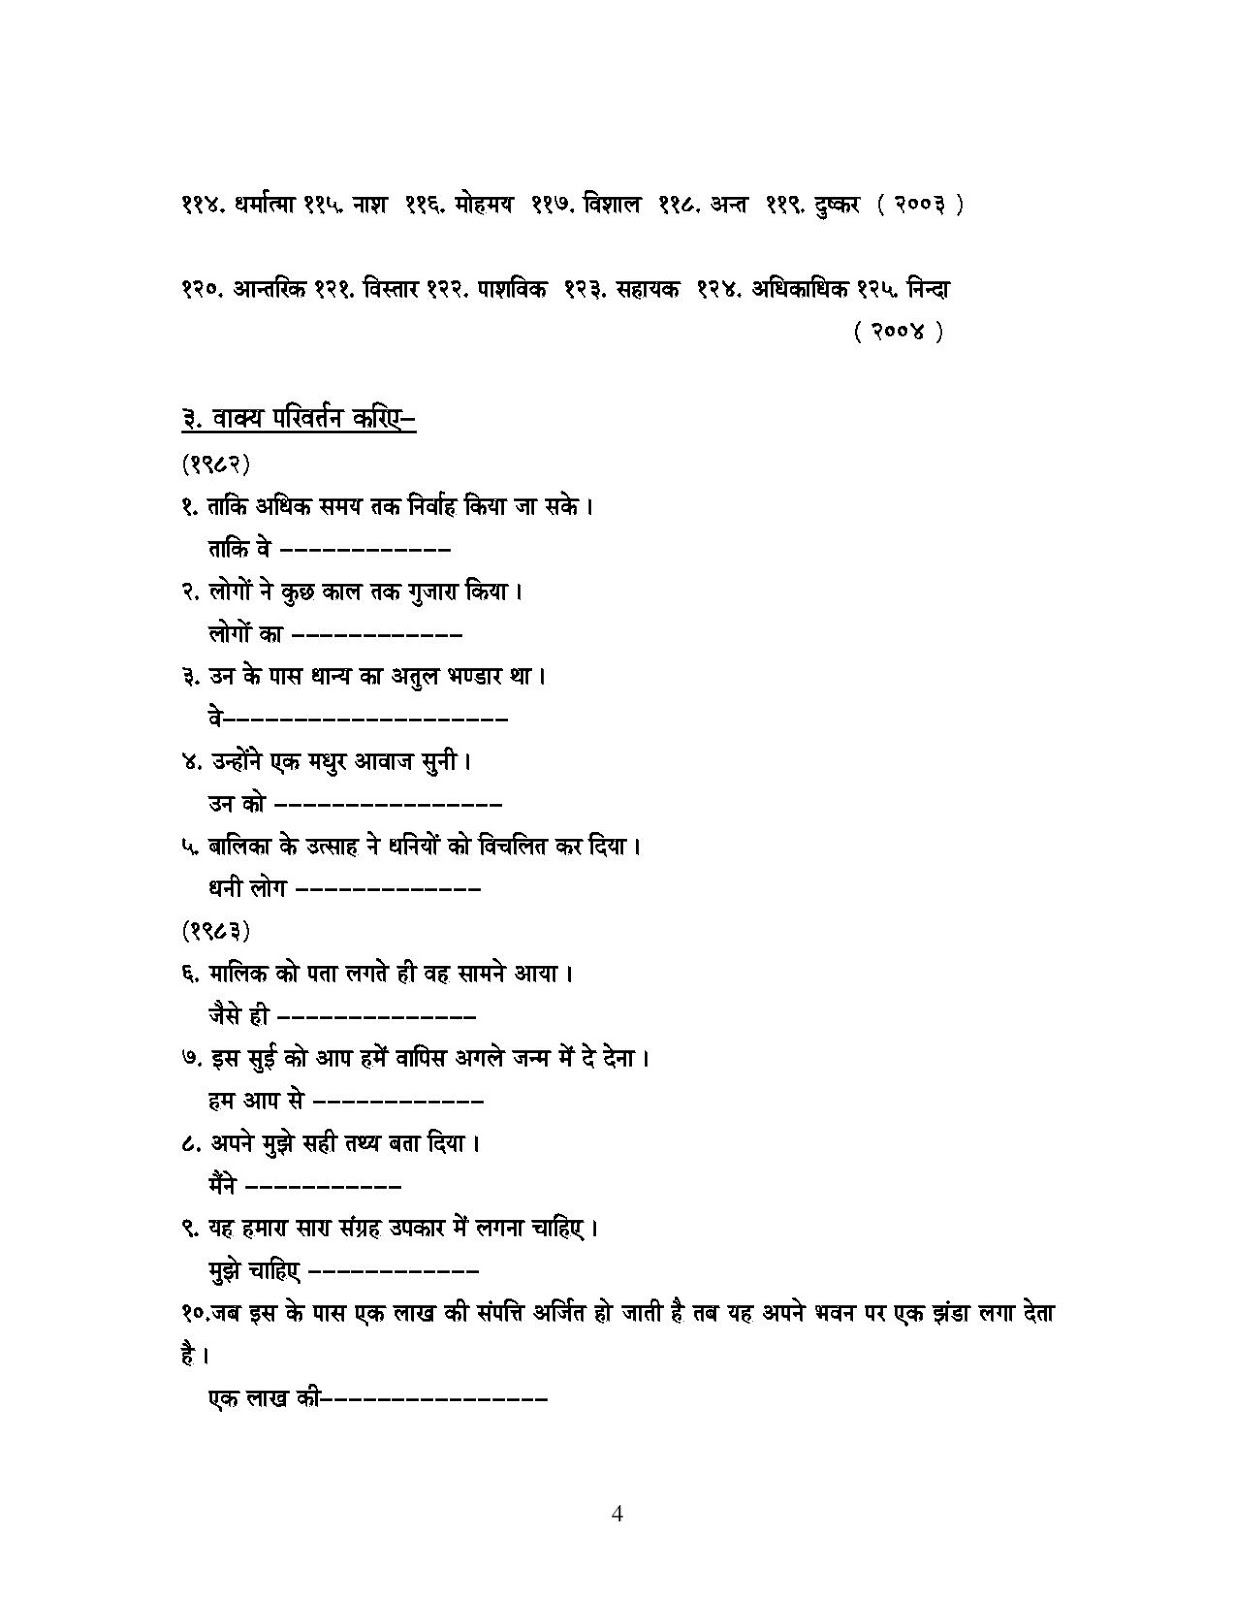 Hindi Grammar Work Sheet Collection For Classes 5 6 7 8 Grammar